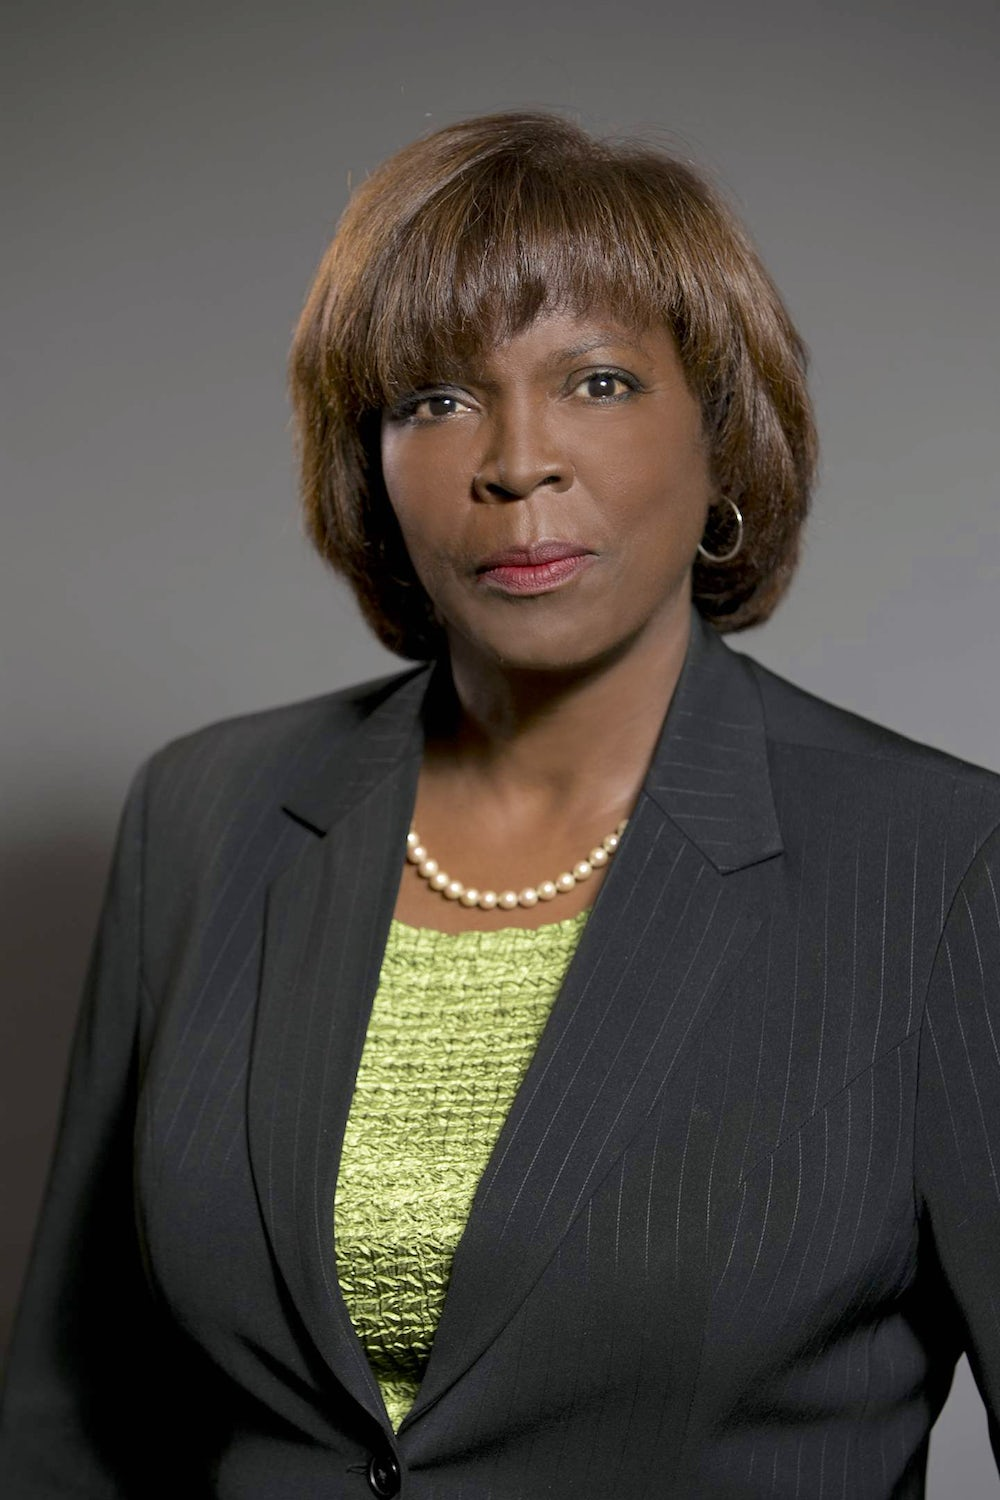 A picture of Heifer Board Member Ertharin Cousin.